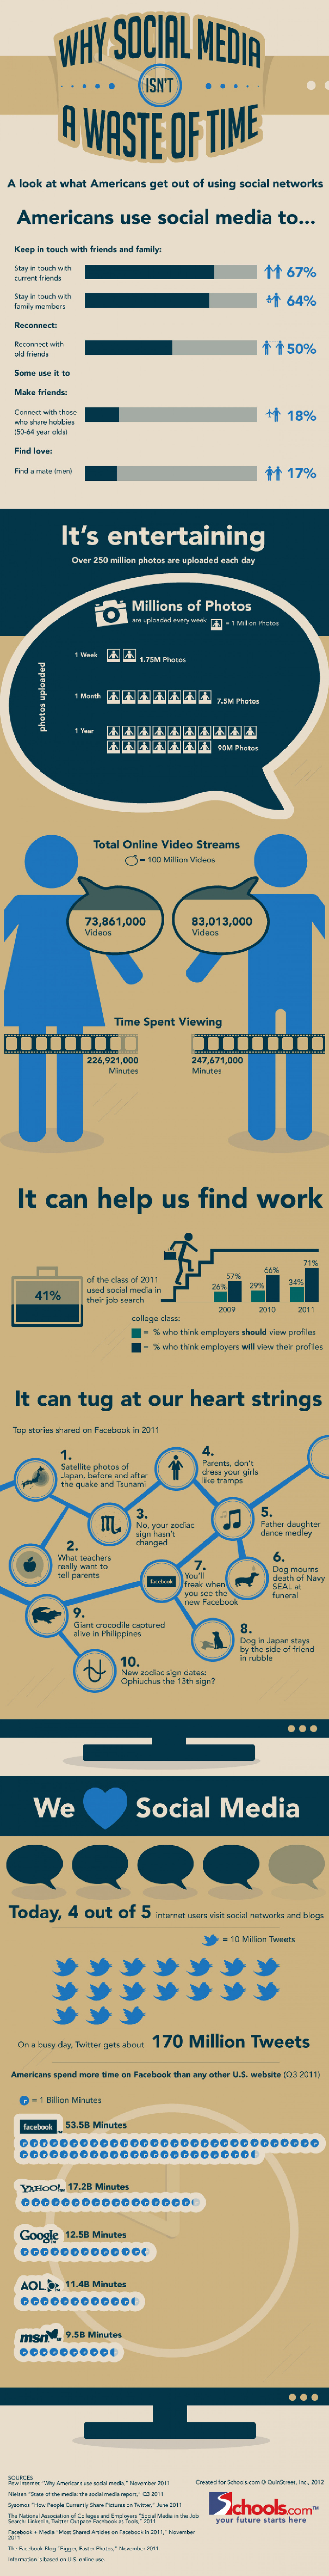 Why Social Media isn't a Waste of Time Infographic